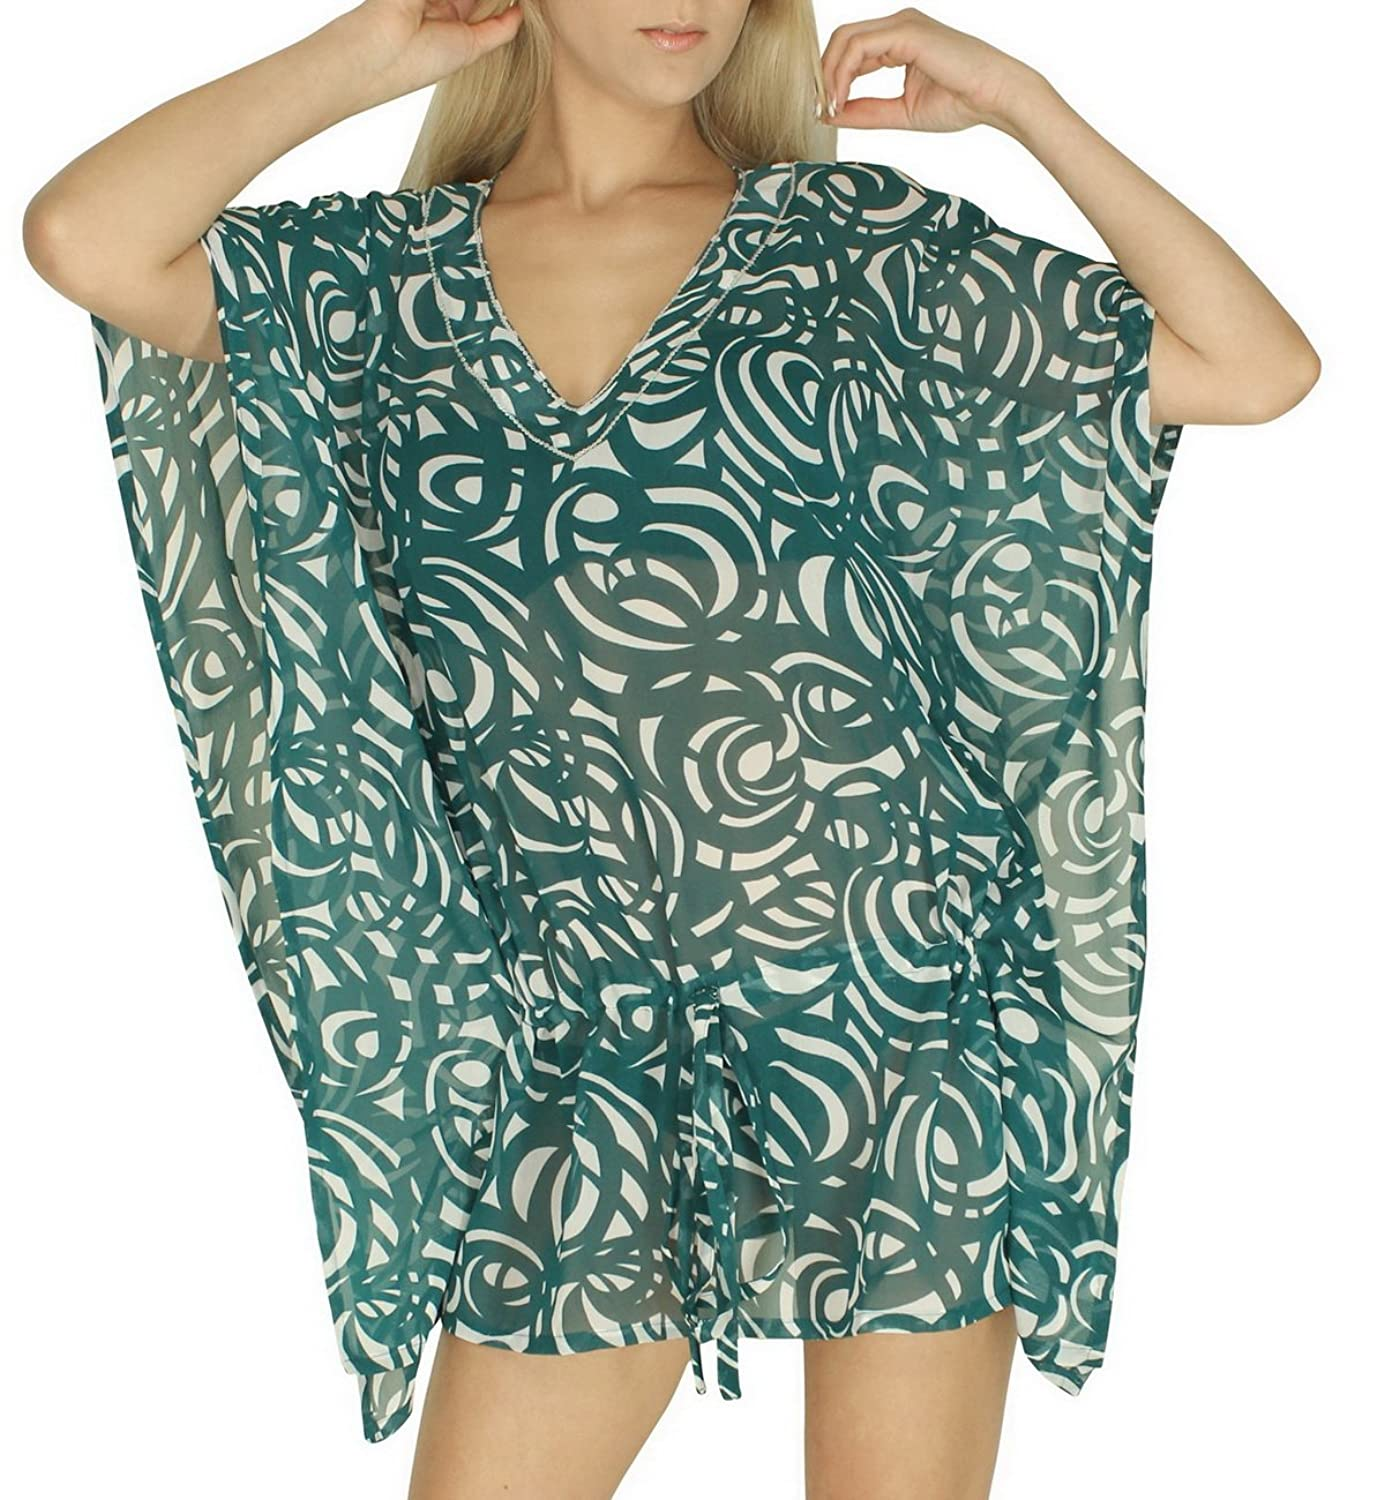 La Leela Sheer Chiffon Allover Printed Kaftan Beach Swim Cover up Cgreen bohemia ethnic printed beach chiffon cover up